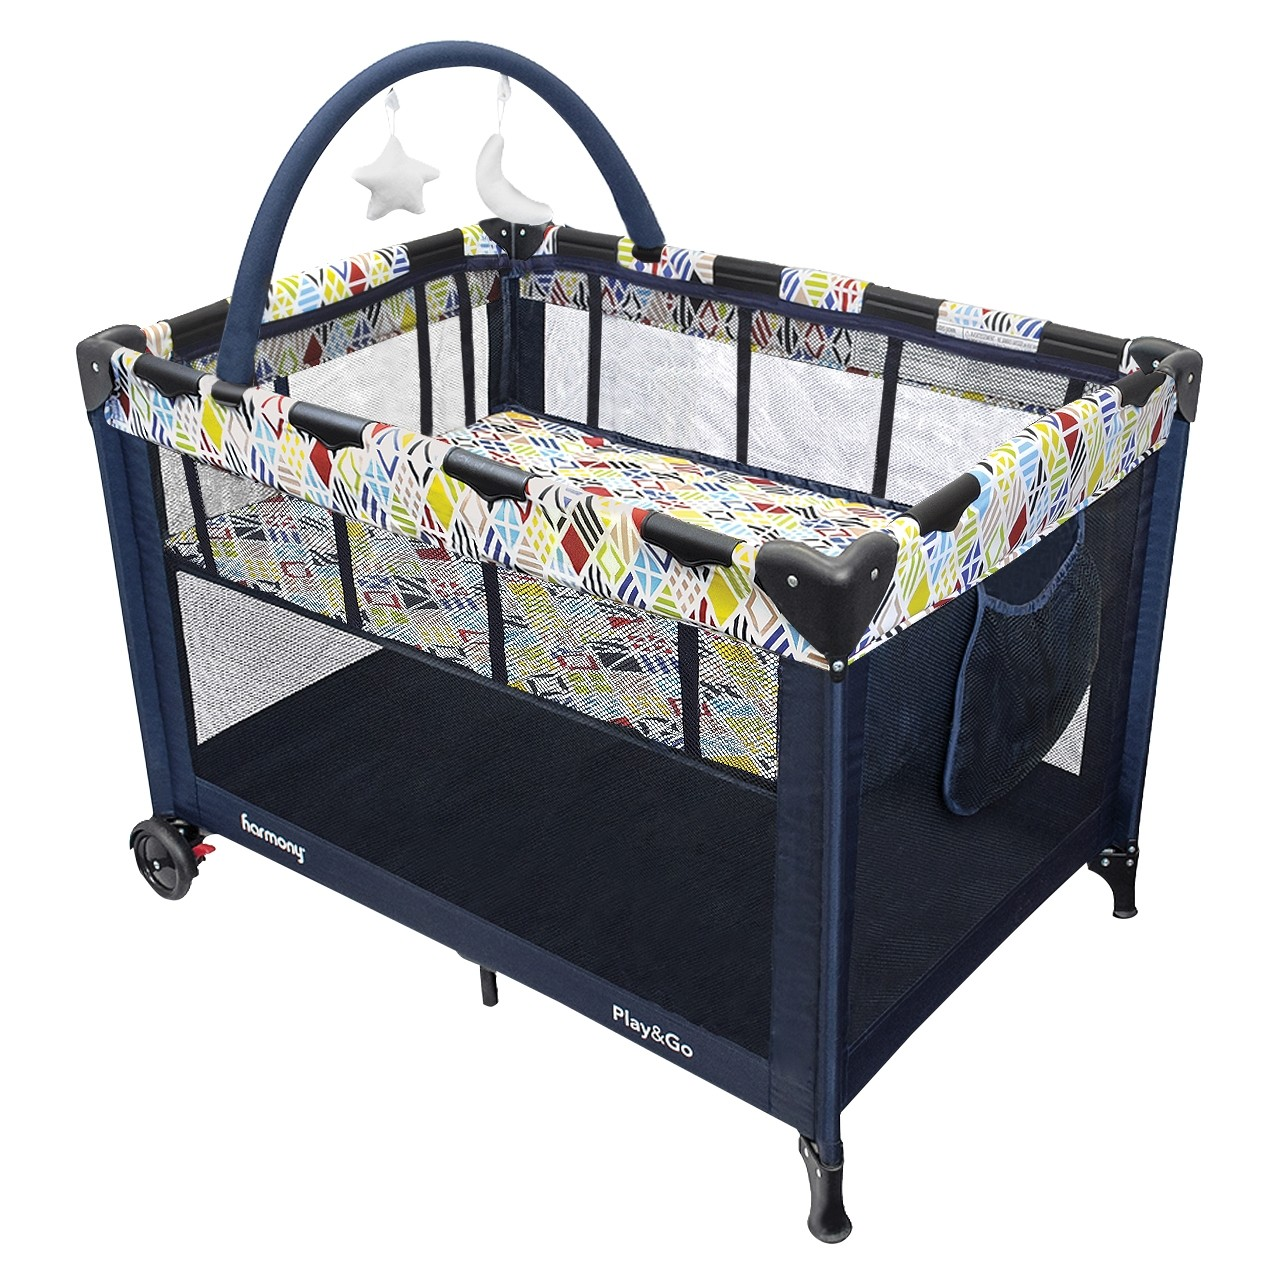 Play & Go Deluxe Playard - Mosaic